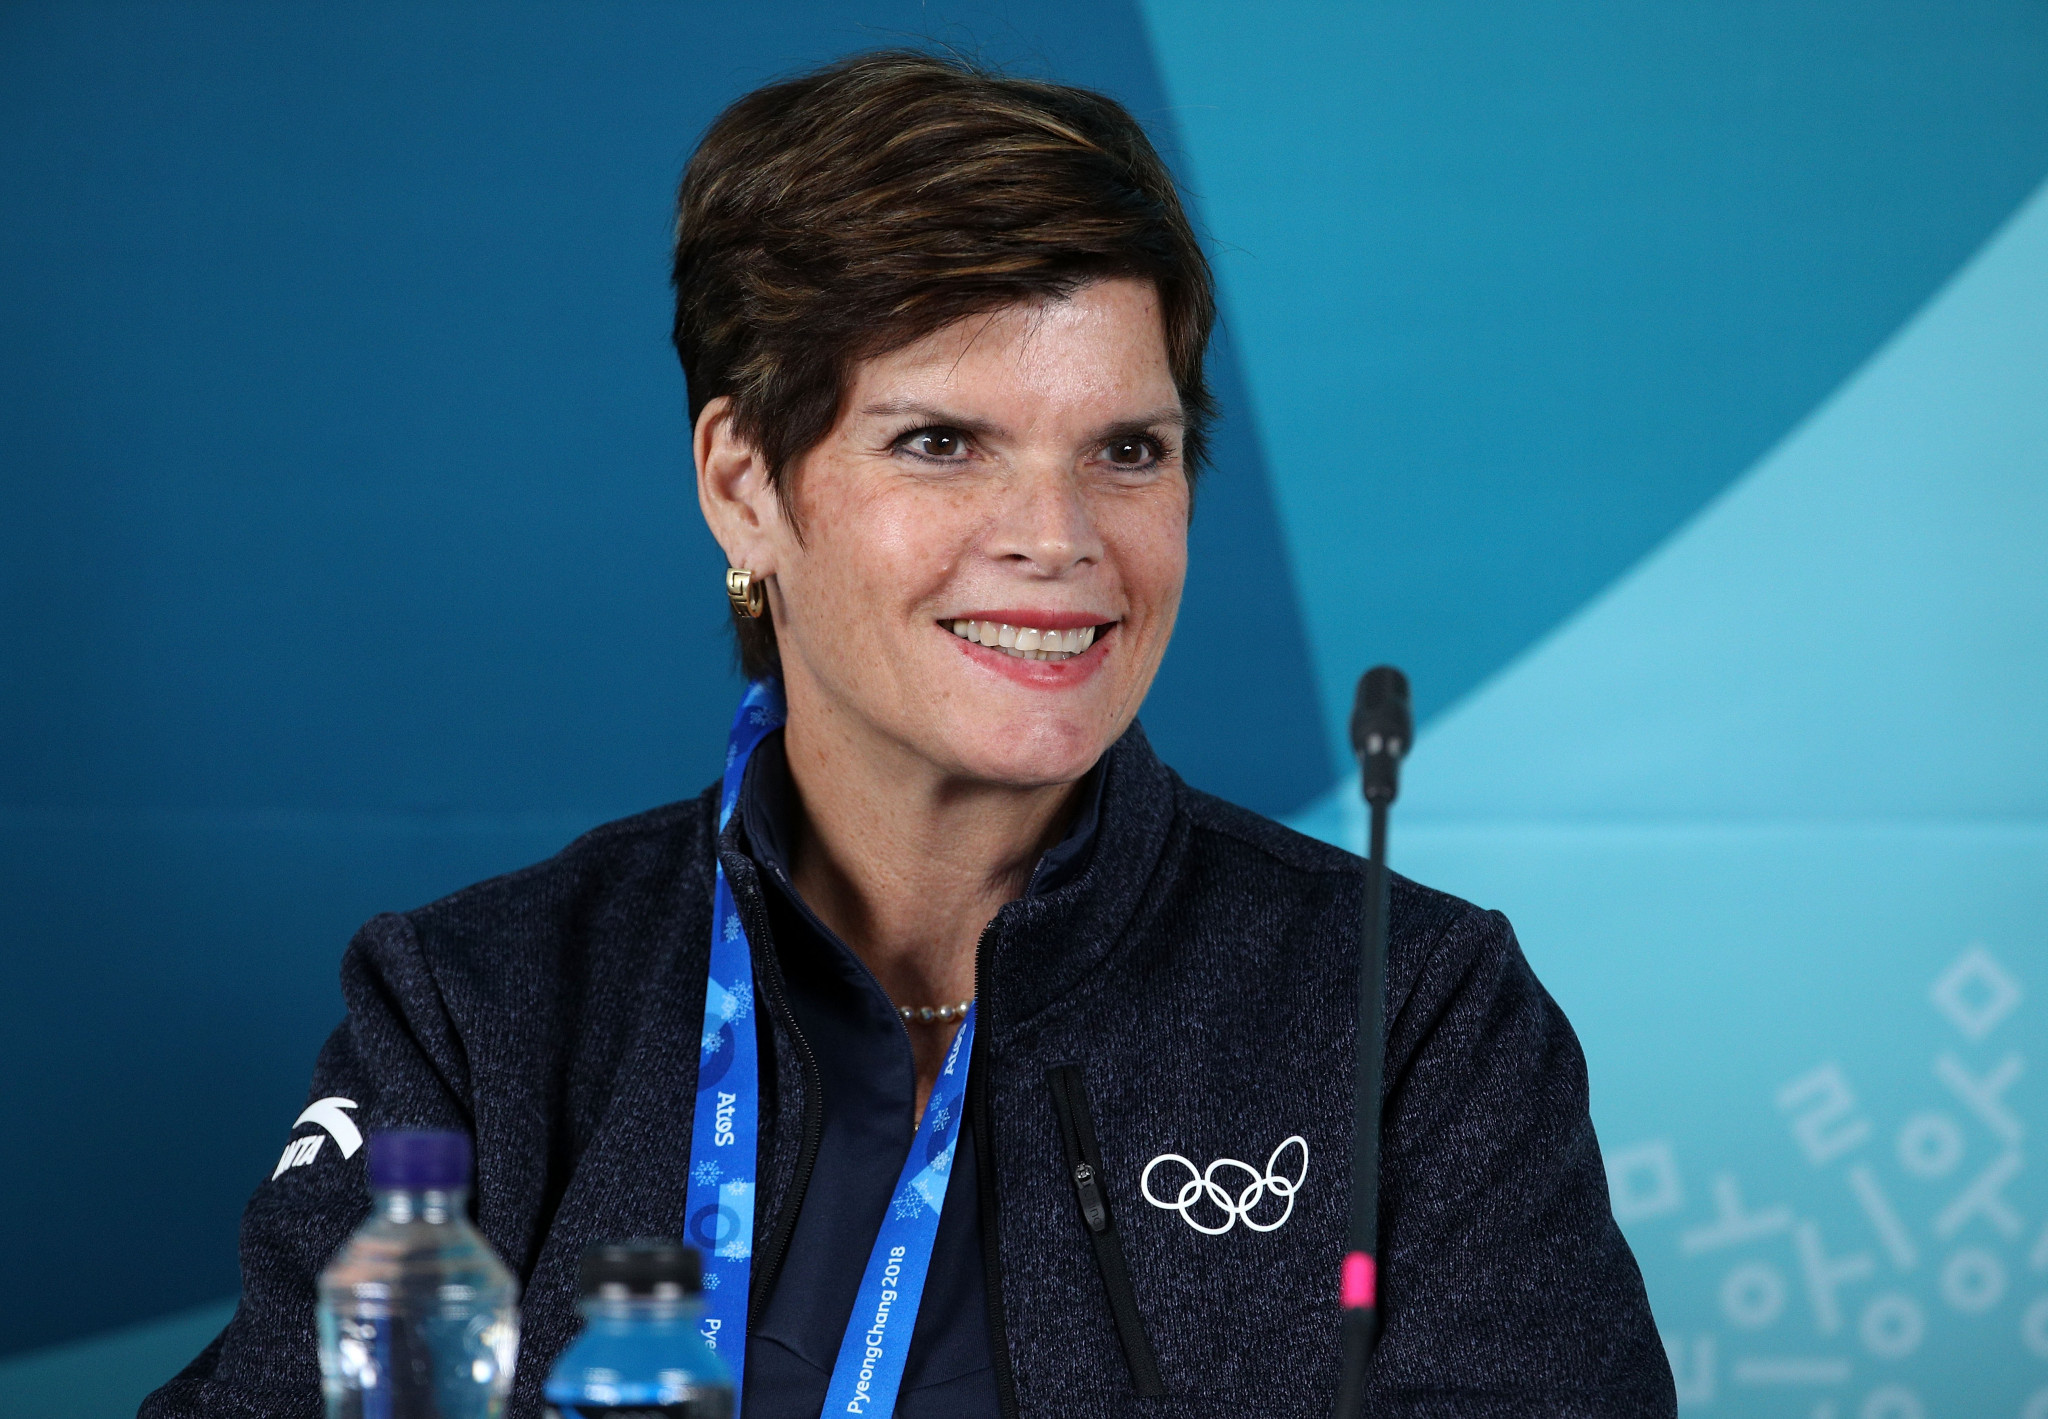 Nicole Hoevertsz has been tipped as a future International Olympic Committee President ©Getty Images